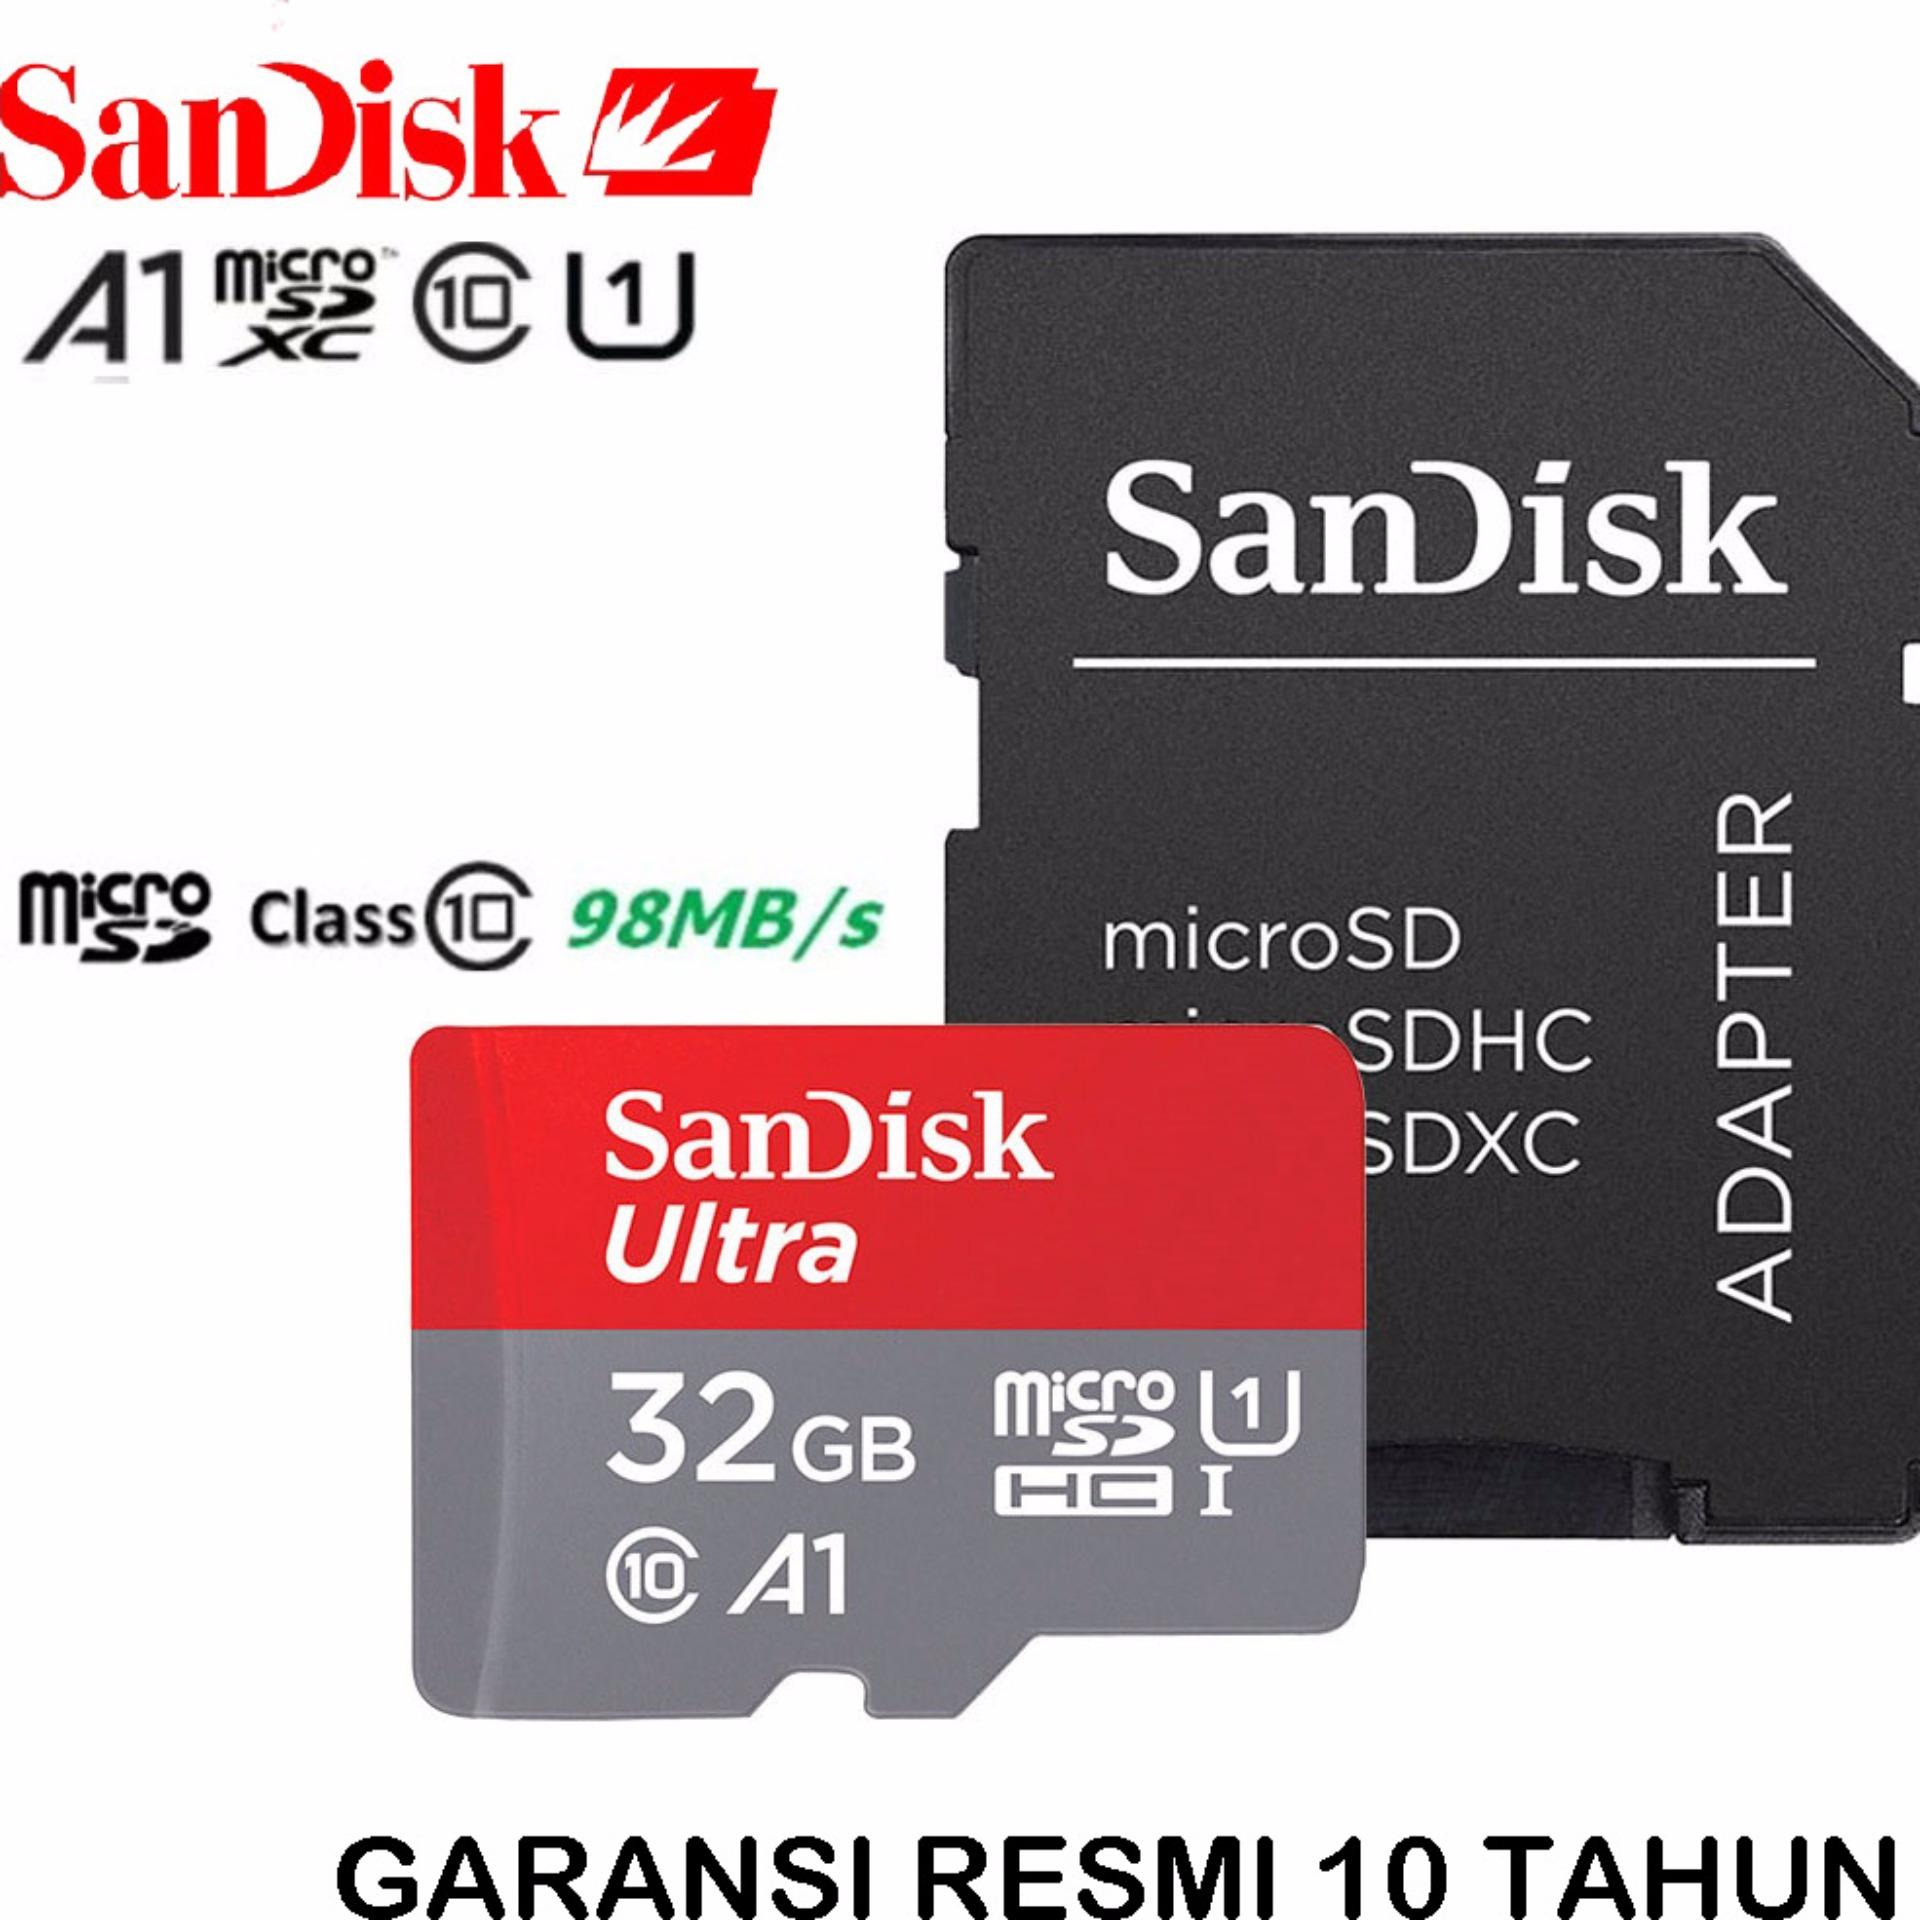 Gratis Tongsis Mini Kabel + Fisheye / Selfie Cam & Iring Stand HPIDR74900. Rp 74.900. Source · SanDisk Ultra MicroSDHC 98MB/s 32GB Class 10 UHS-1 With .